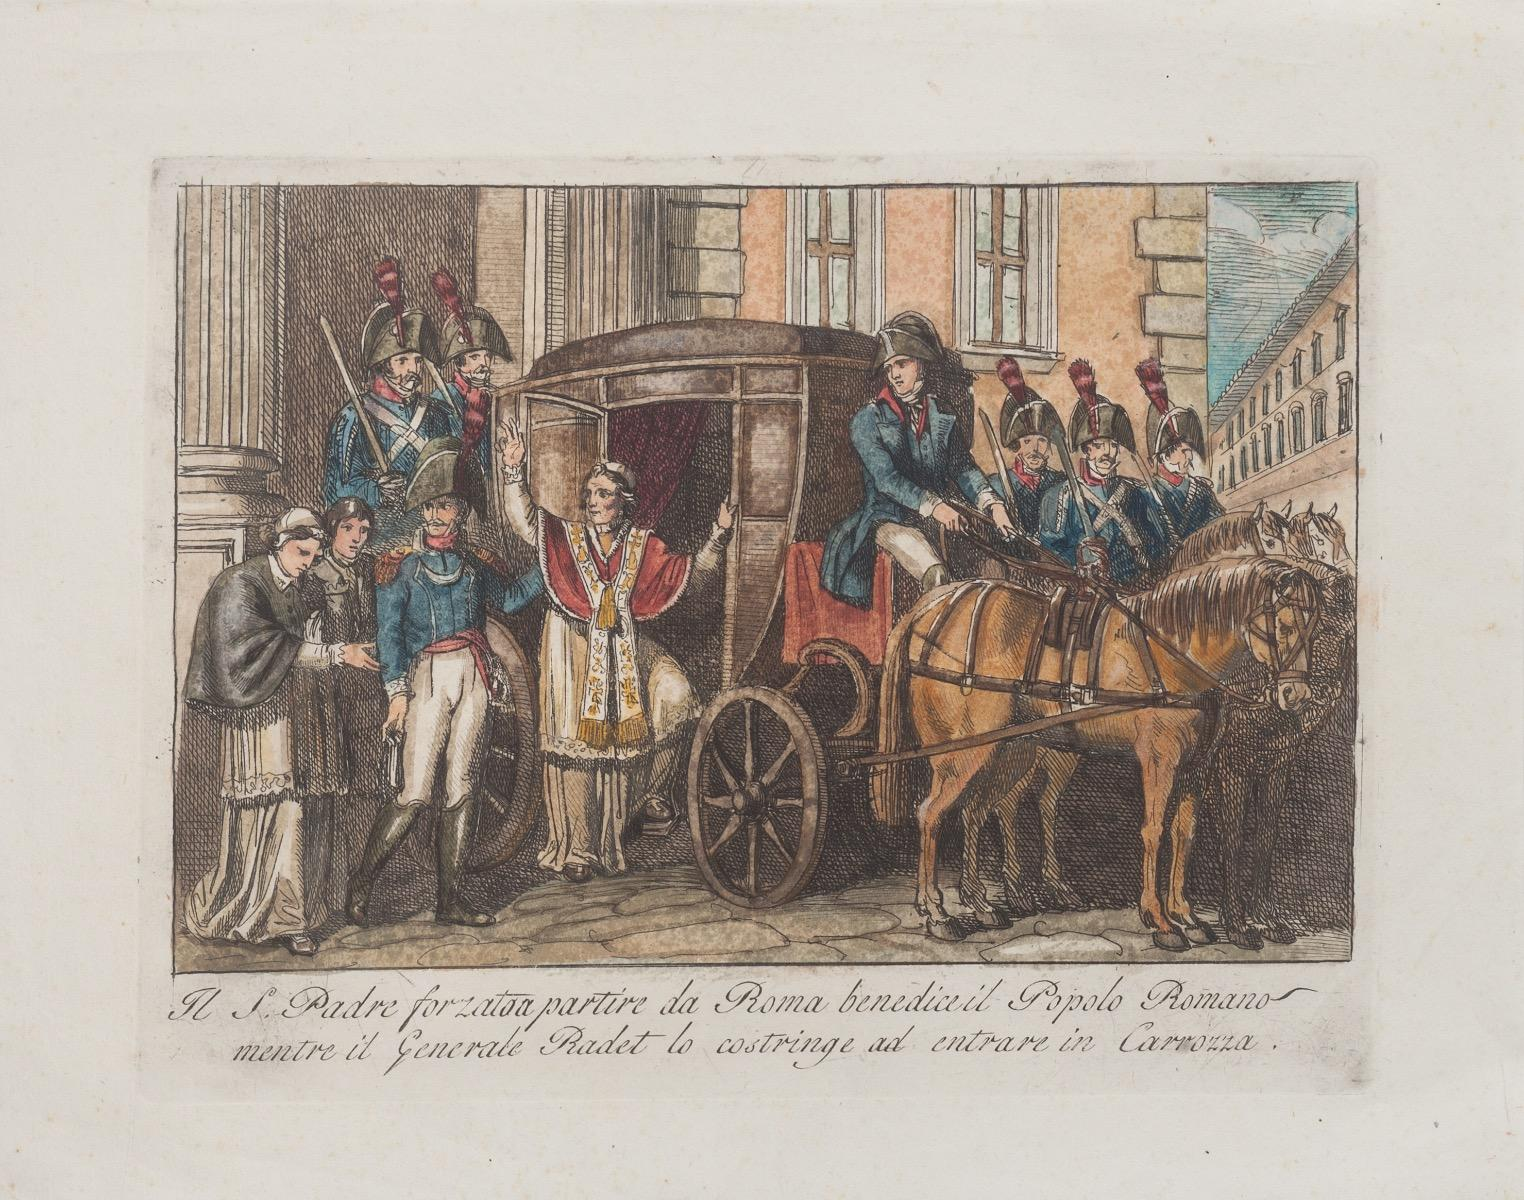 Departure of the Holy Father from Rome - Etching by Bartolomeo Pinelli - 1850